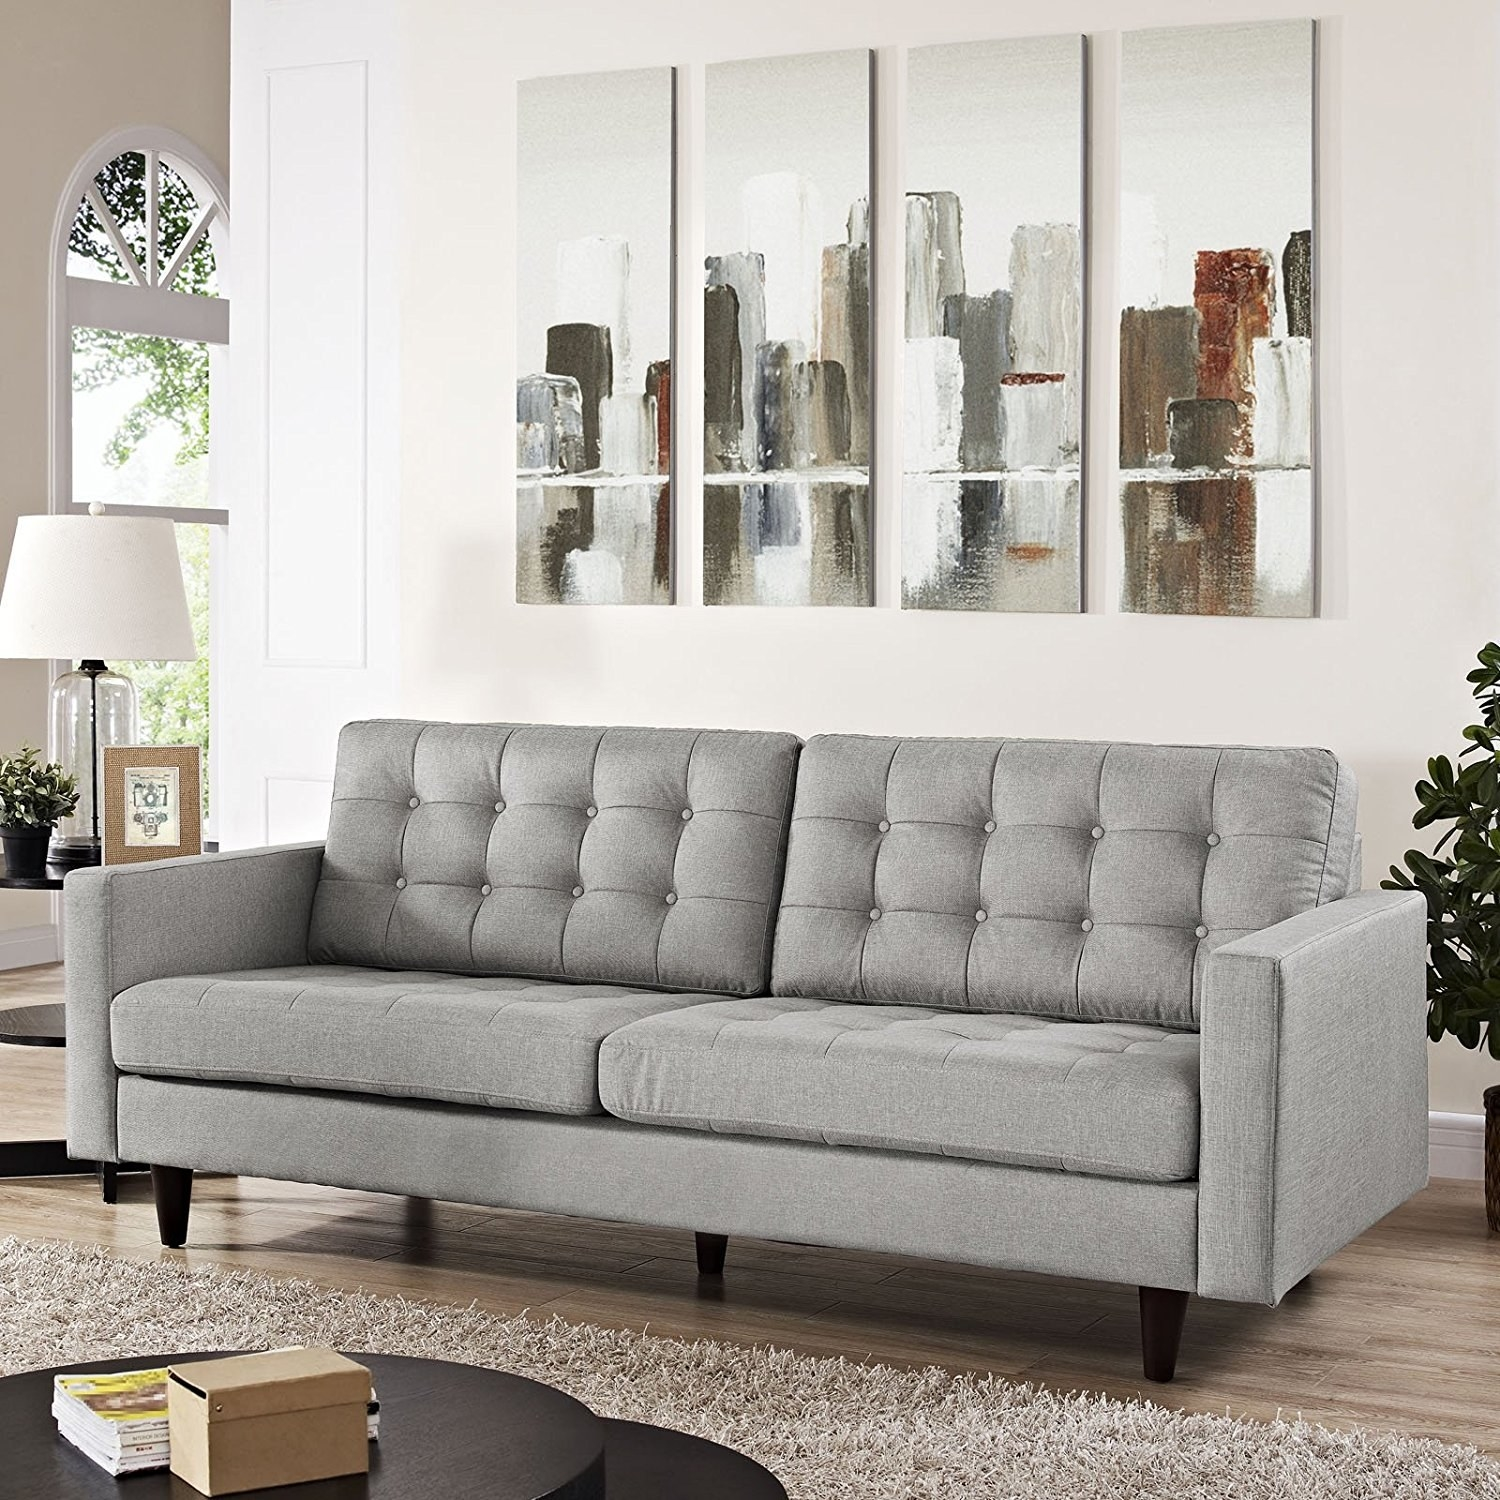 Buy Furniture Online Free Shipping: 29 Of The Best Places To Buy A Sofa Online